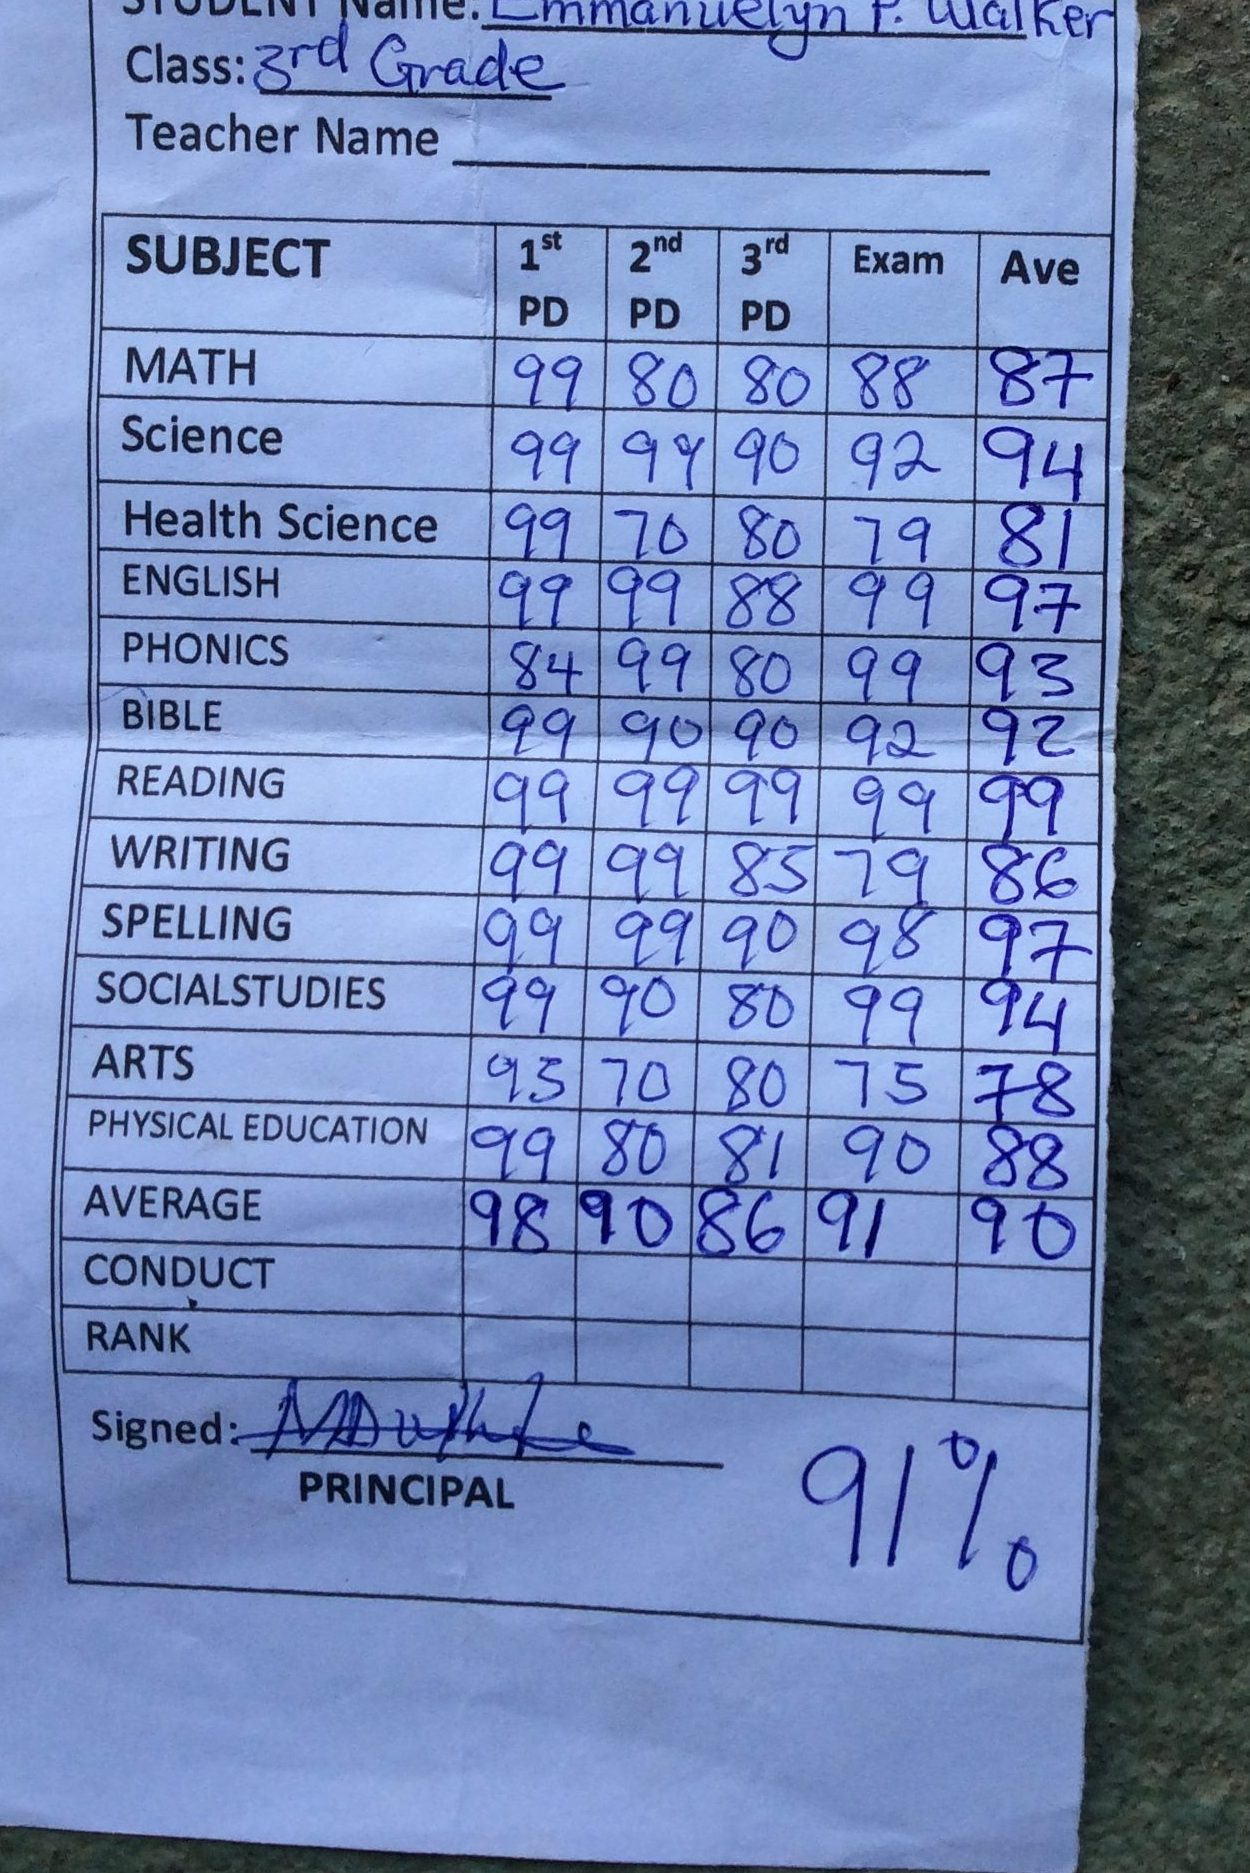 Report Card showing grades, 91% avg